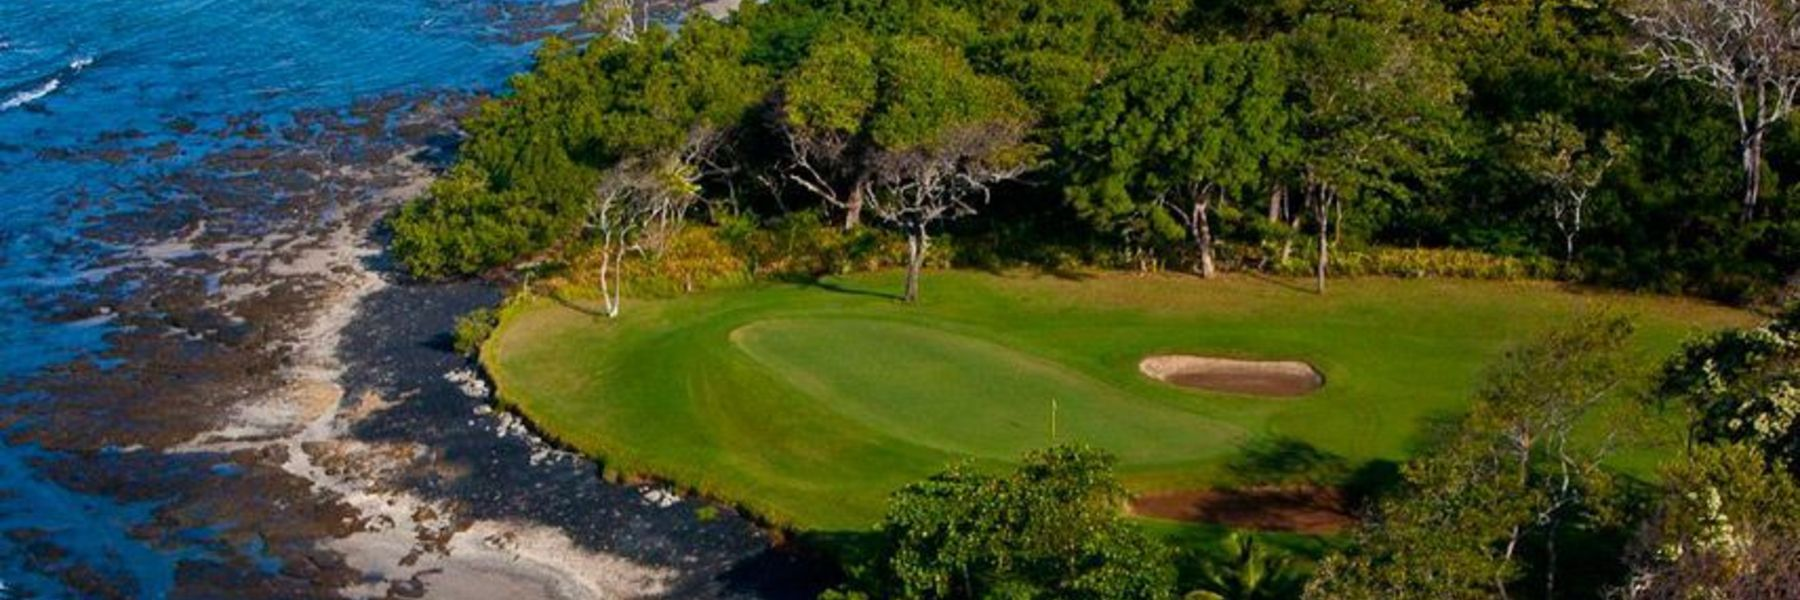 Golf Vacation Package - Peak Season Special: All-Inclusive Stay & Play at Westin Playa Conchal Resort for $436 per day!